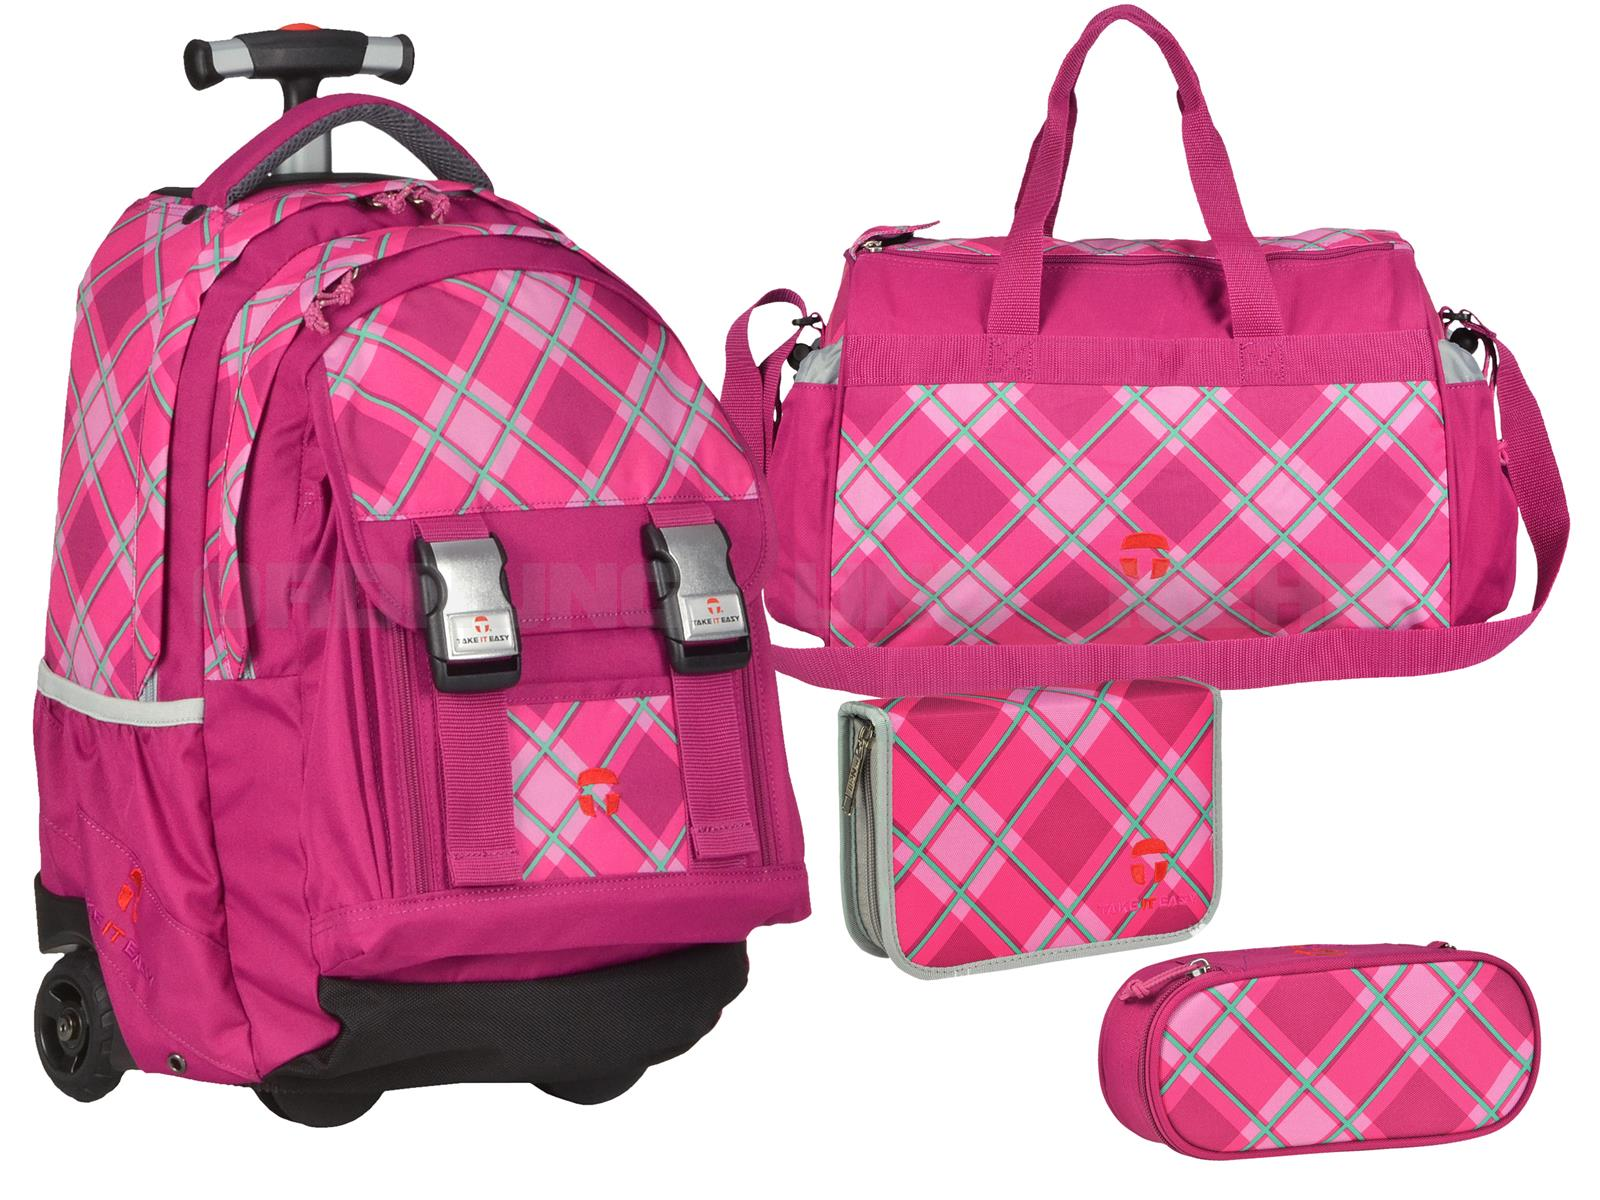 Take it Easy Schultrolley Set FANTASY 4-teilig pink kariert